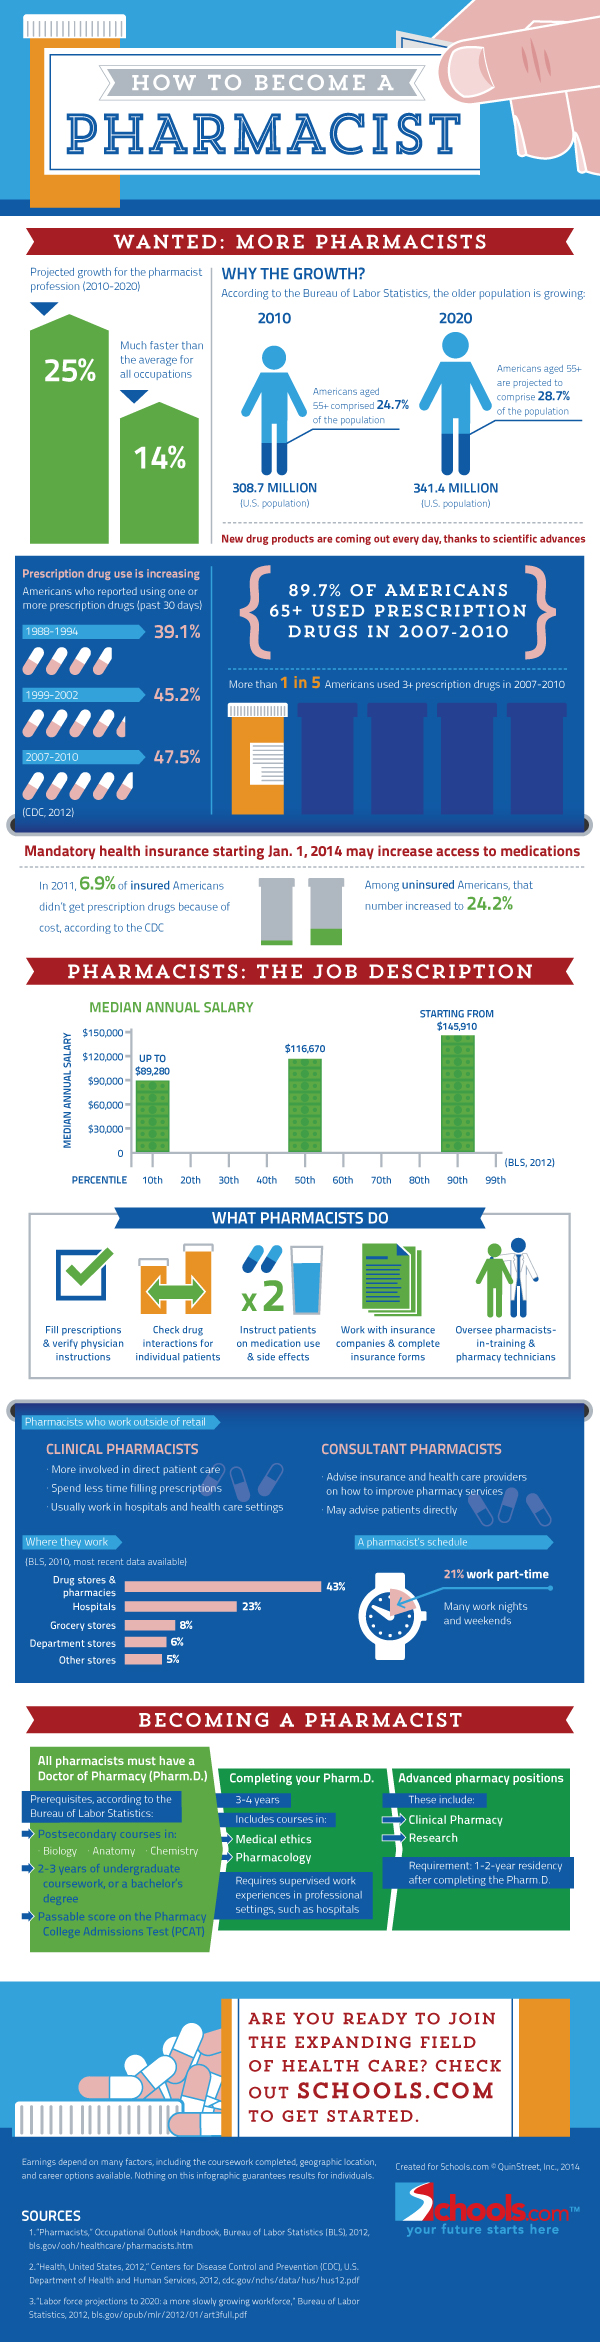 why i want to become a pharmacy technician If you want to become a pharmacy technician, getting the right training is a good place to start.